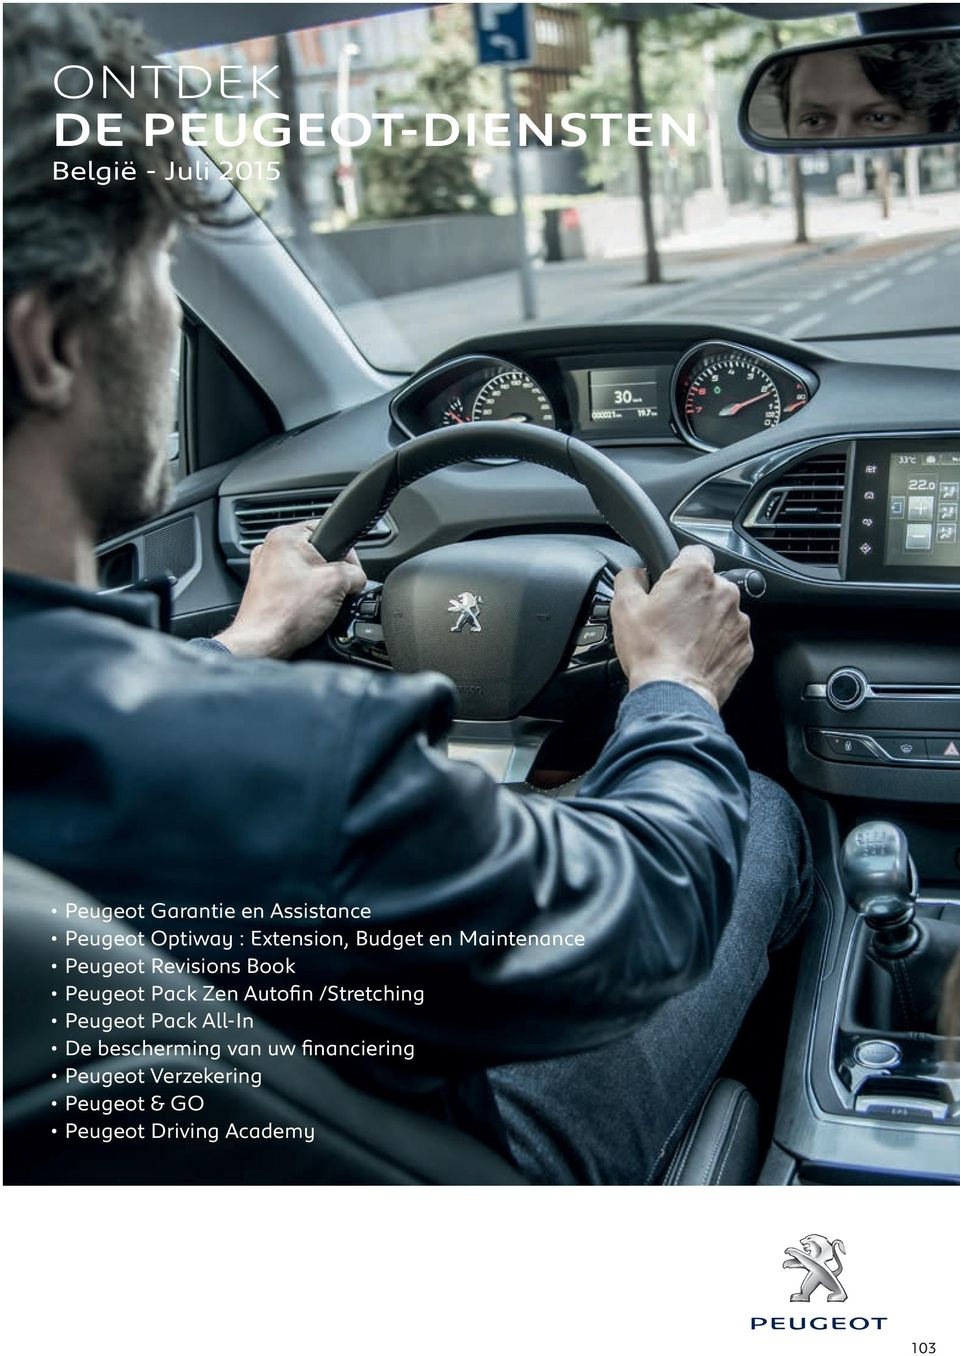 Revisions Book Peugeot Pack Zen Autofin /Stretching Peugeot Pack All-In De